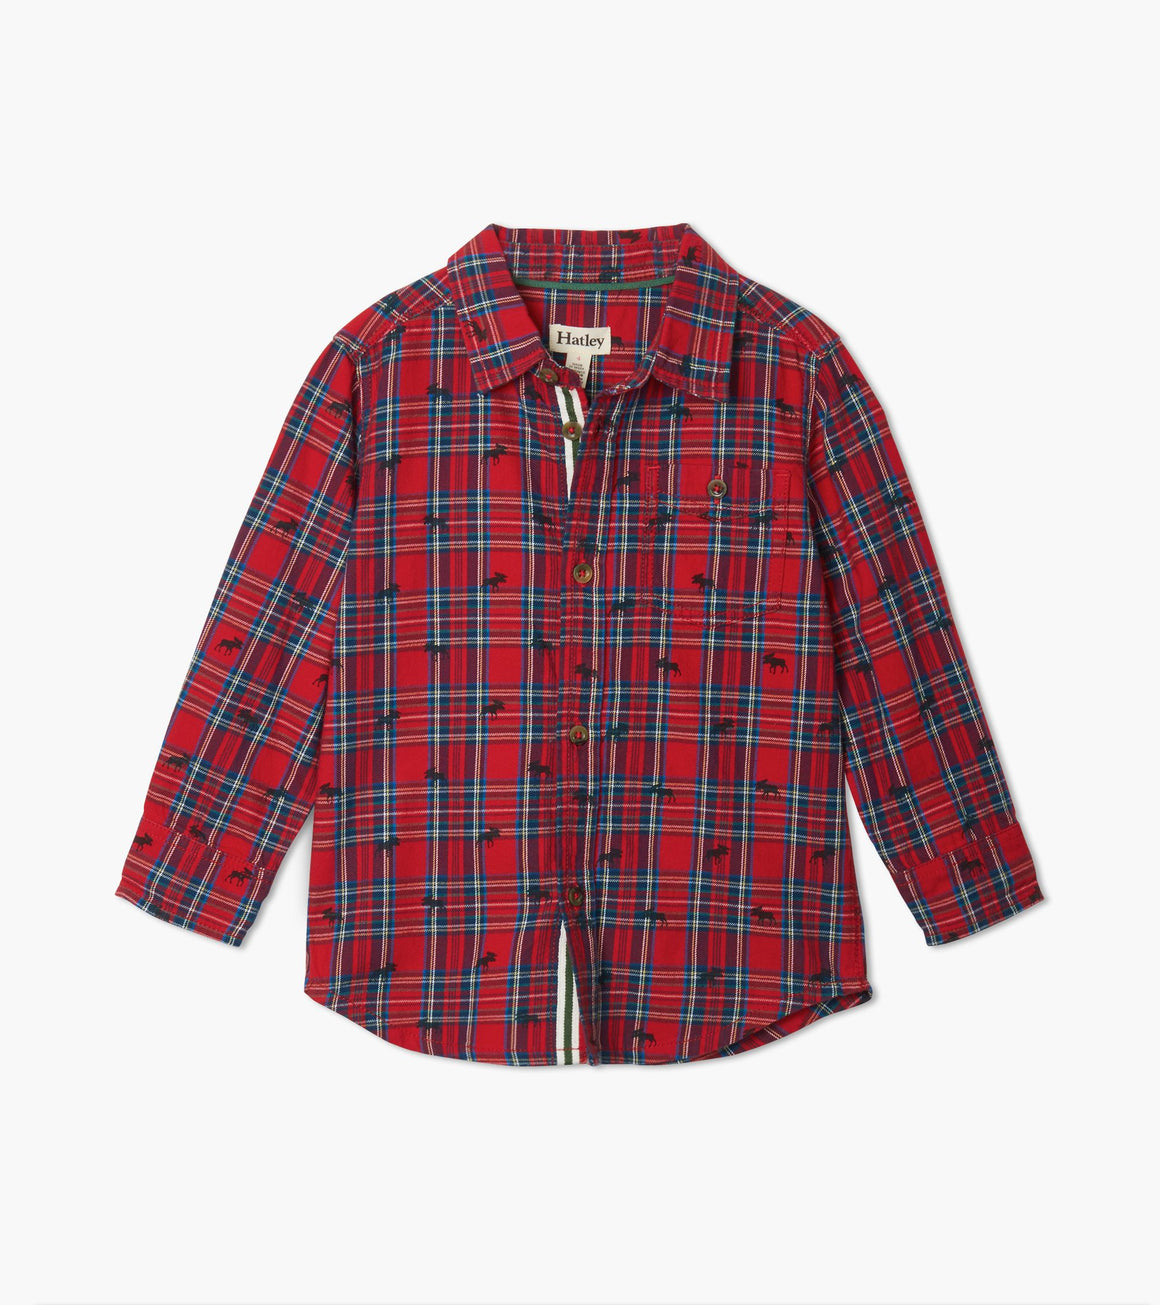 Hatley | Holiday Plaid Moose Button Down Shirt